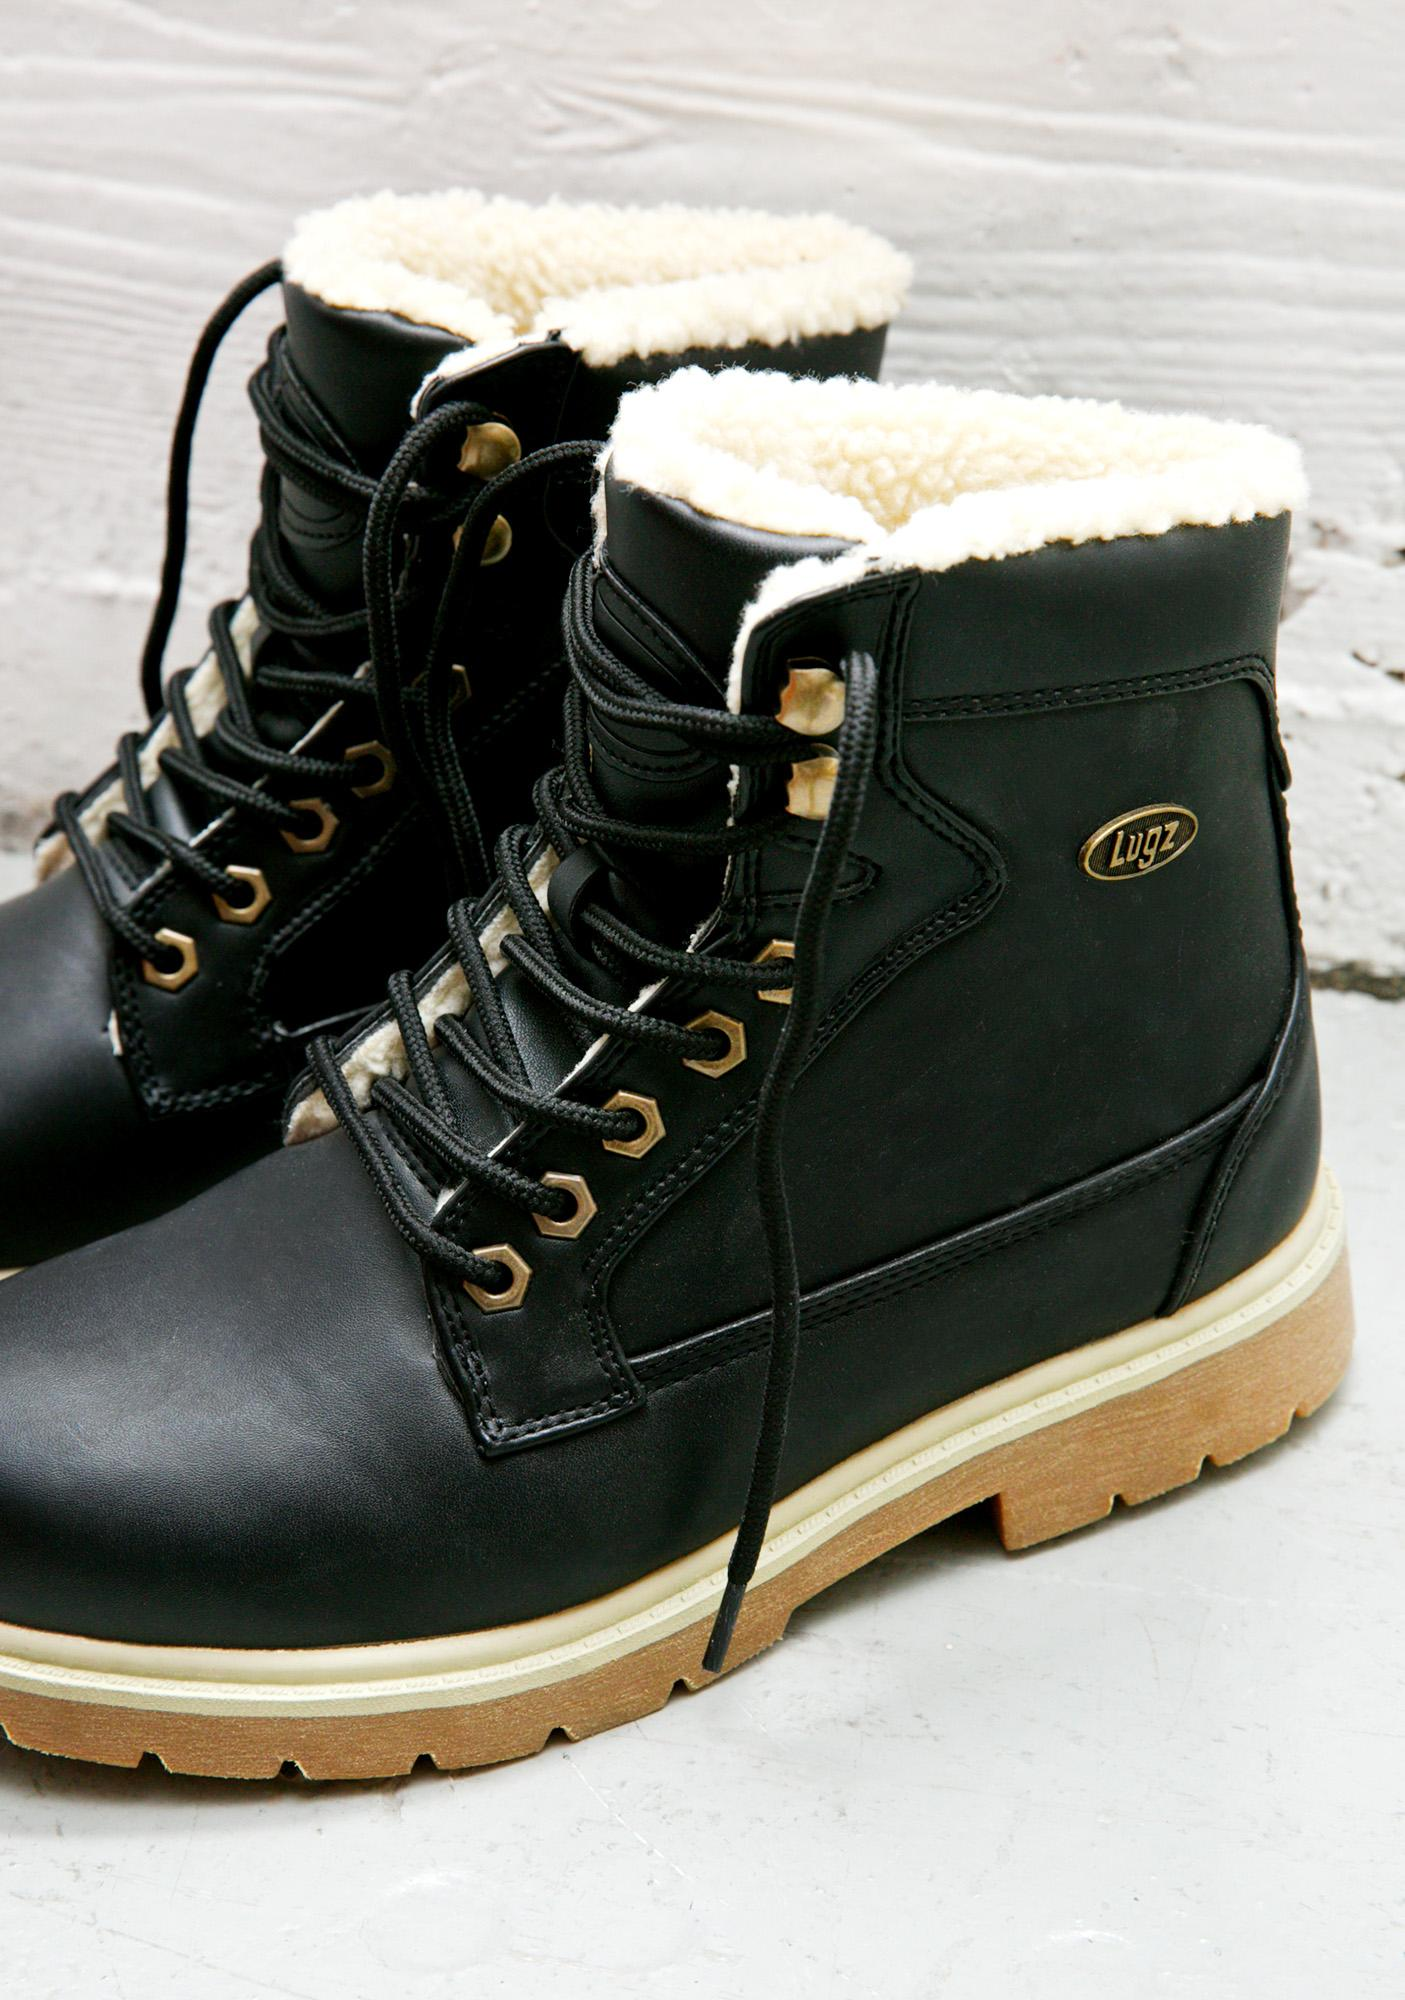 Lugz Regiment High Fleece Boots